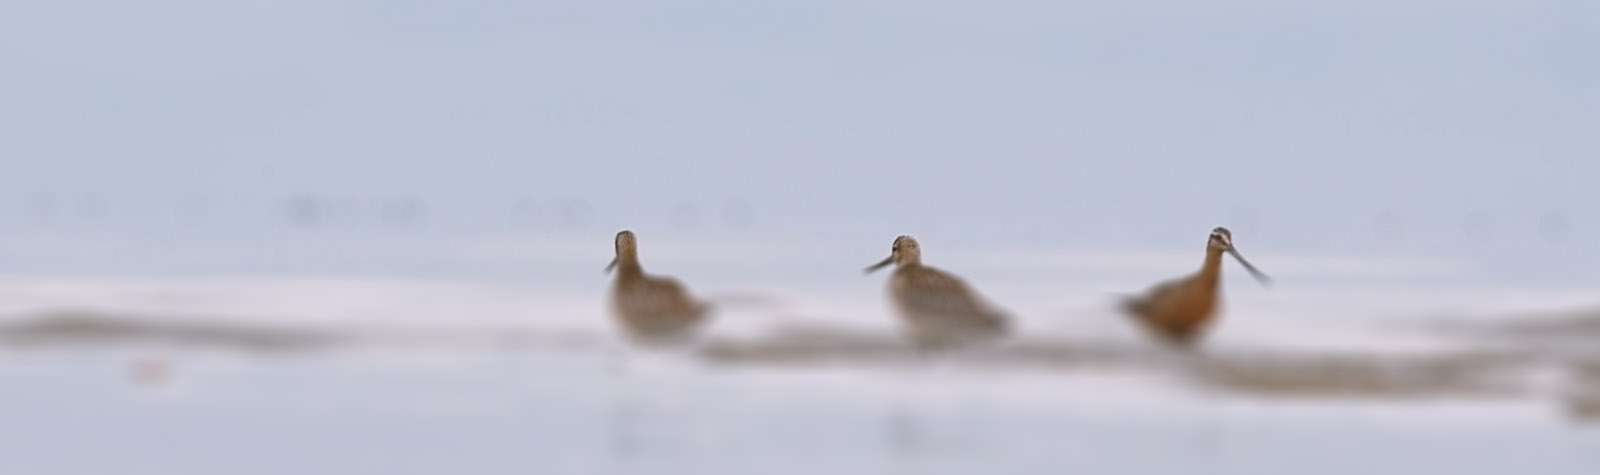 Shorebirds – The movie